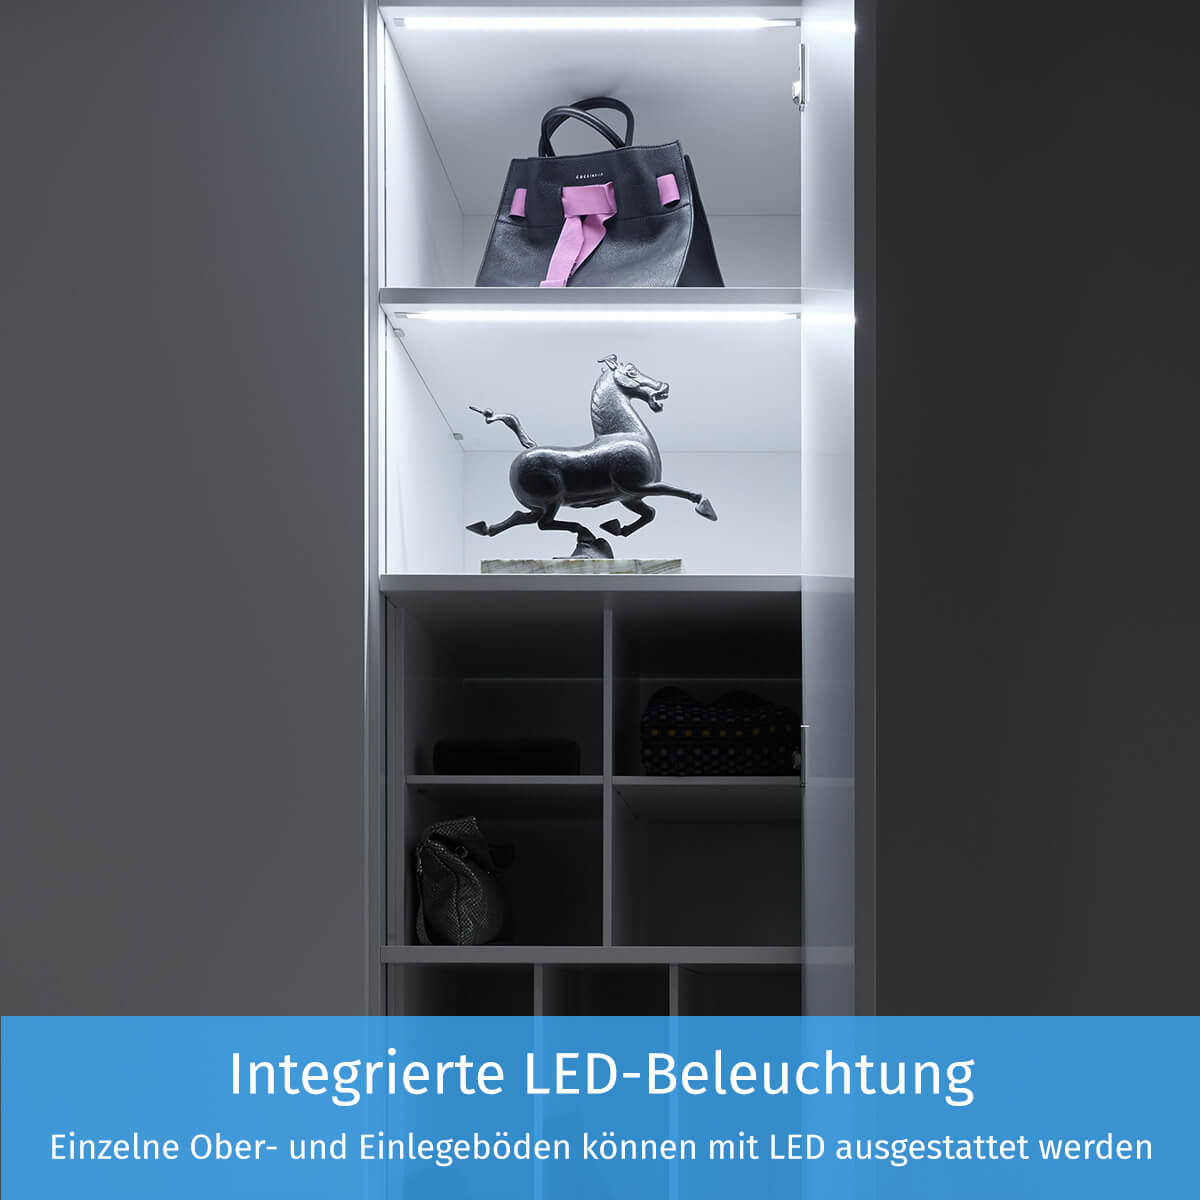 Integrierte LED-Beleuchtung